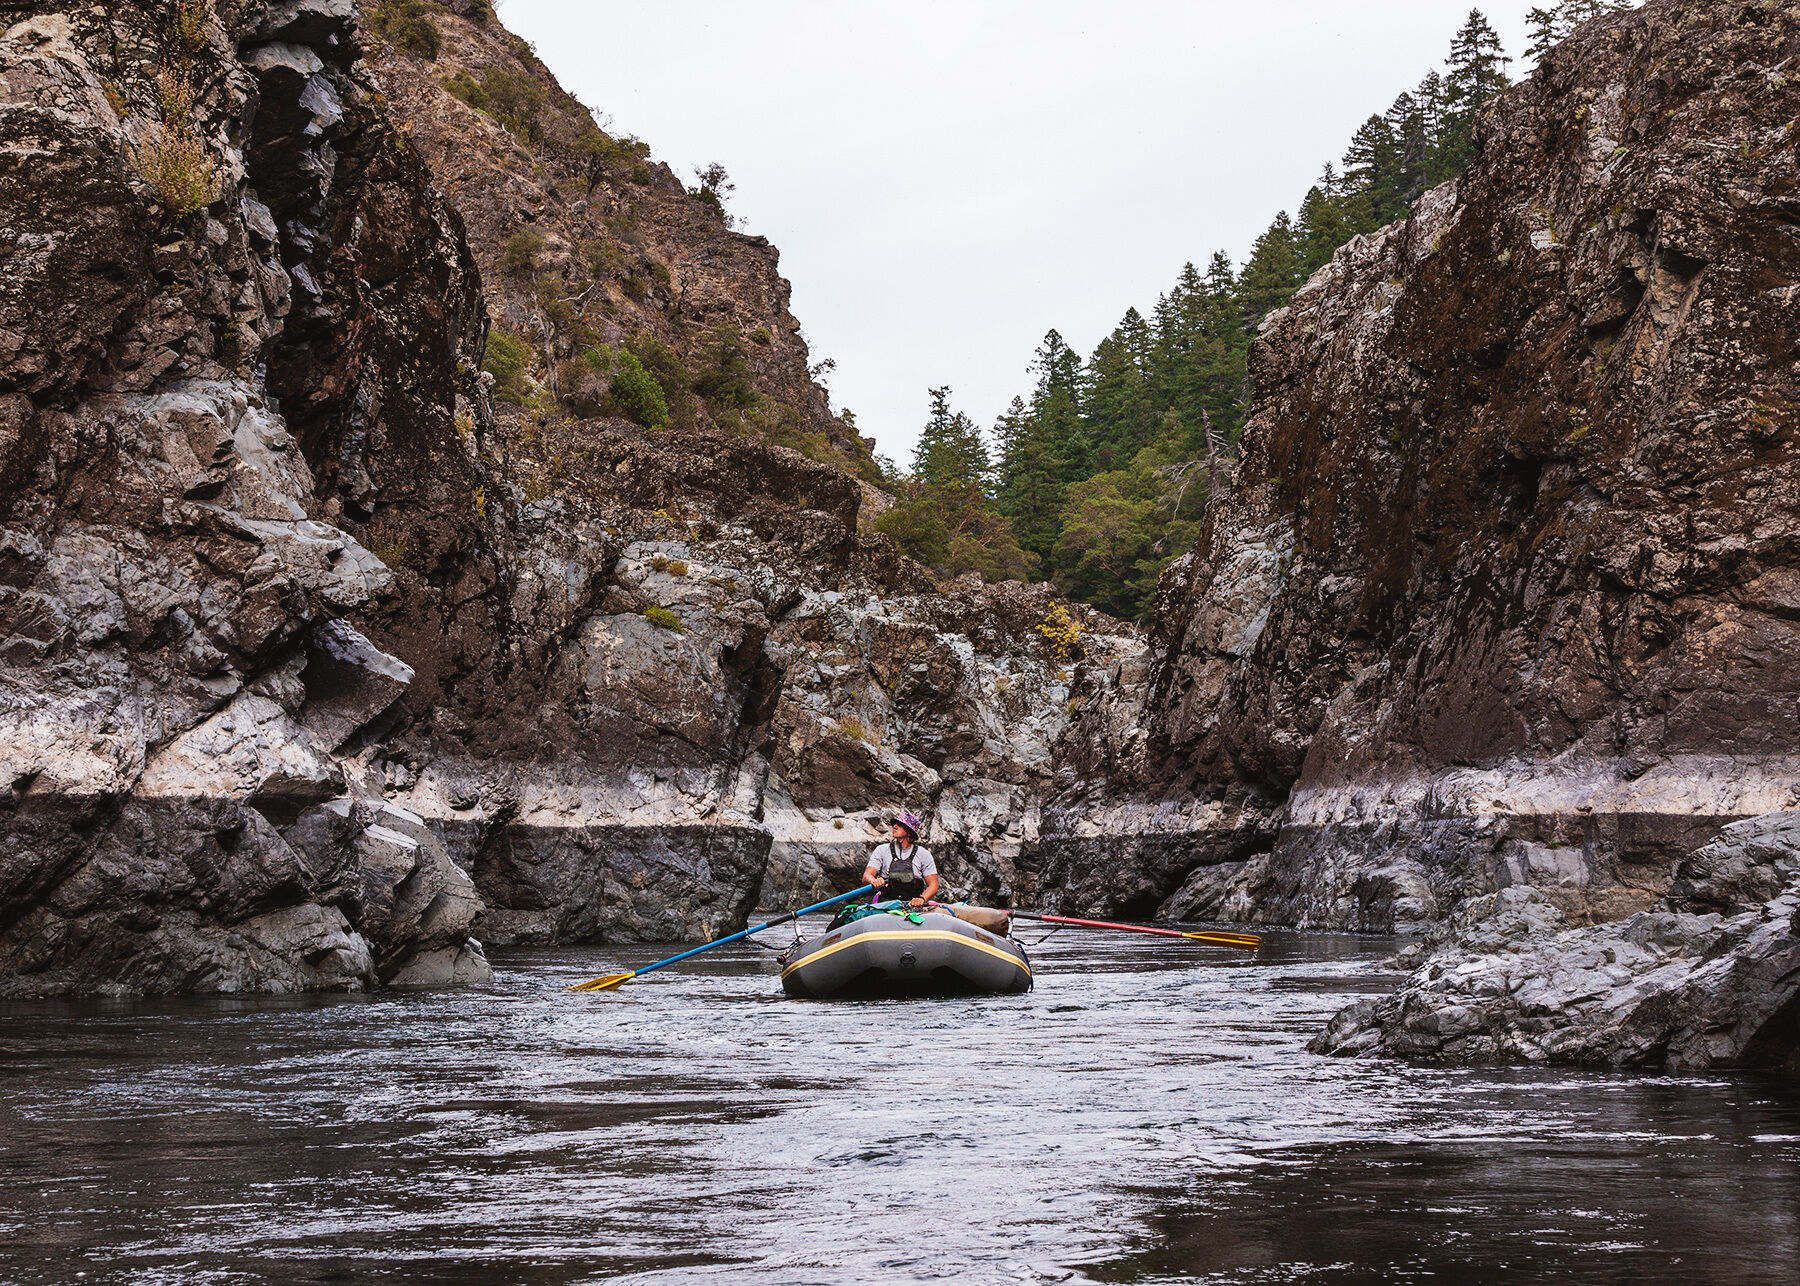 Andrew rafting down the Rogue River in Oregon